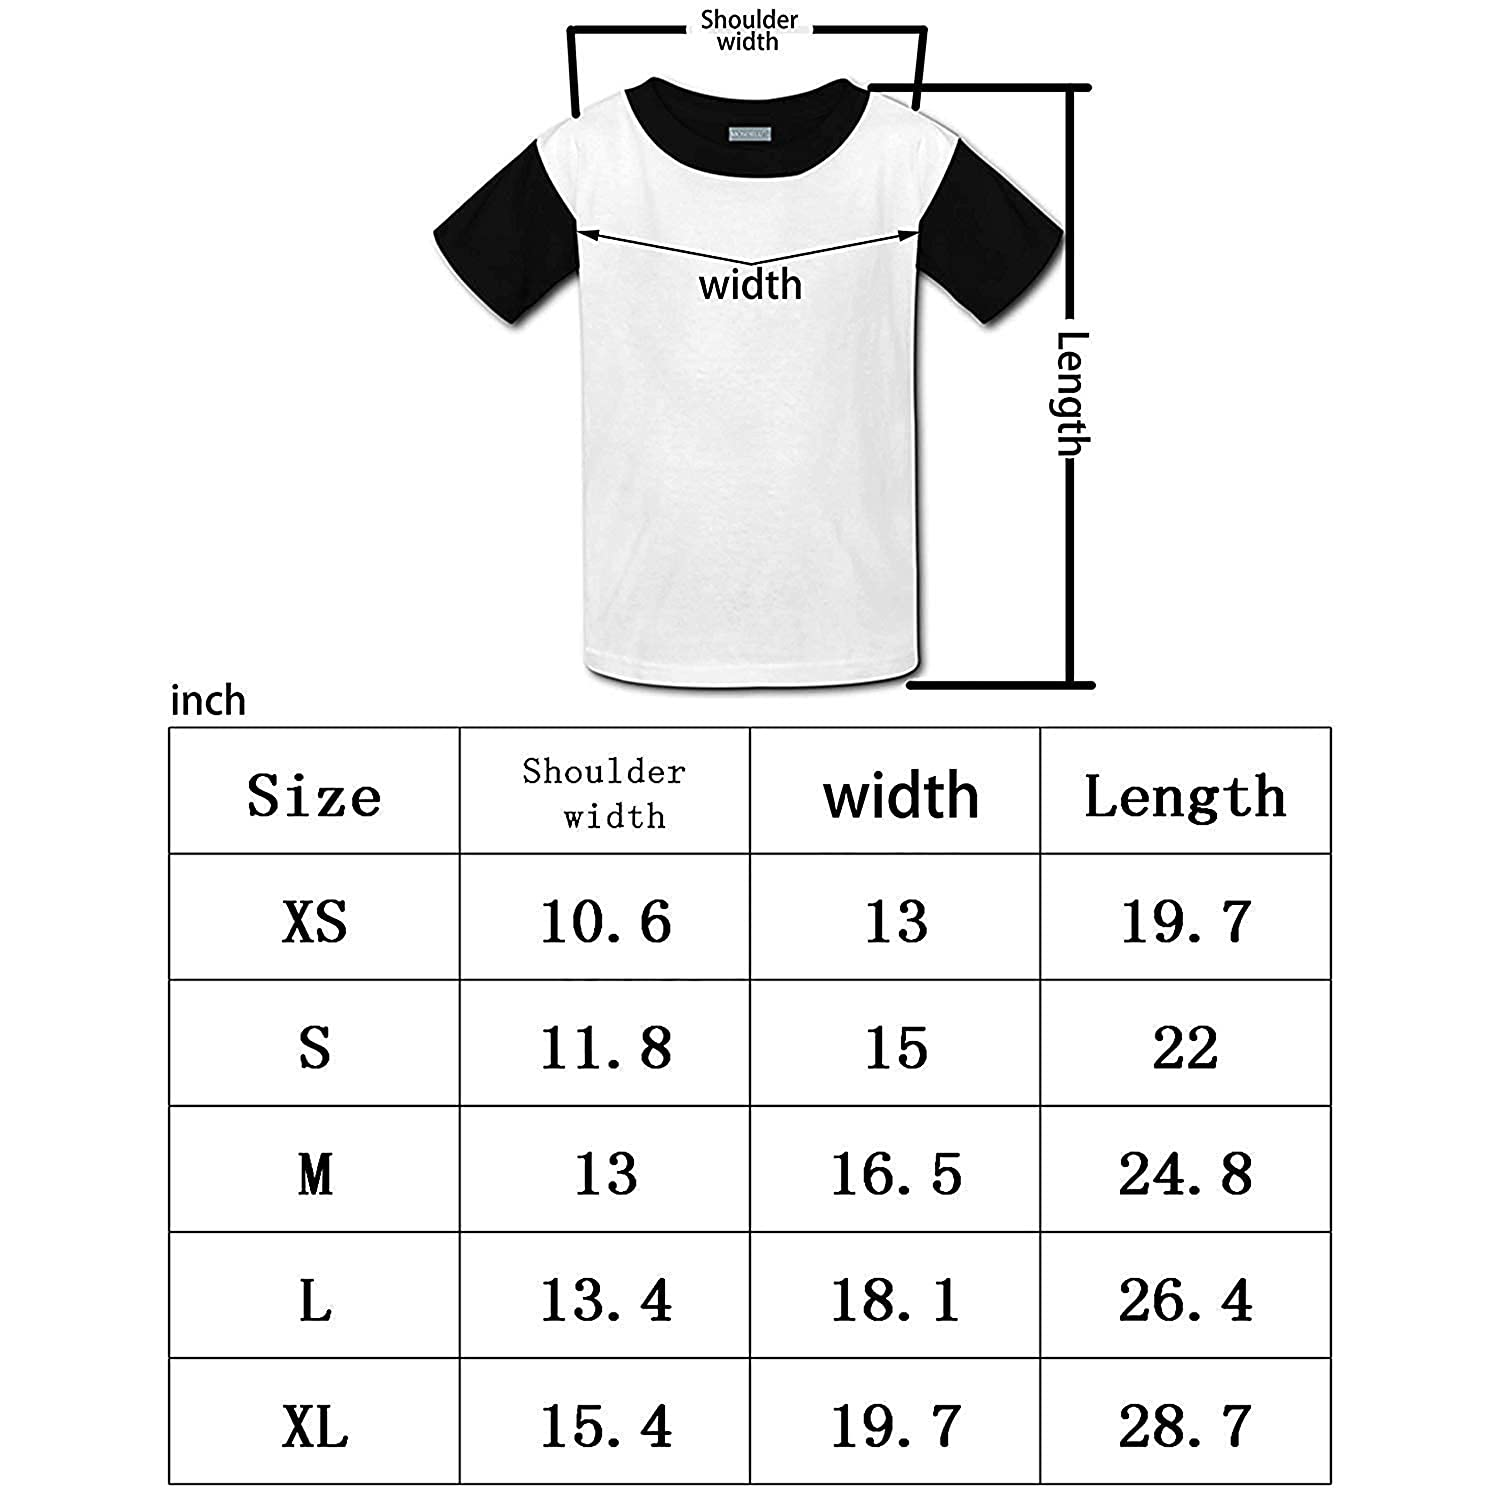 S-tranger-Thing-s Telephone Kids T-Shirts Long Sleeve Tees Fashion Tops for Boys//Girls